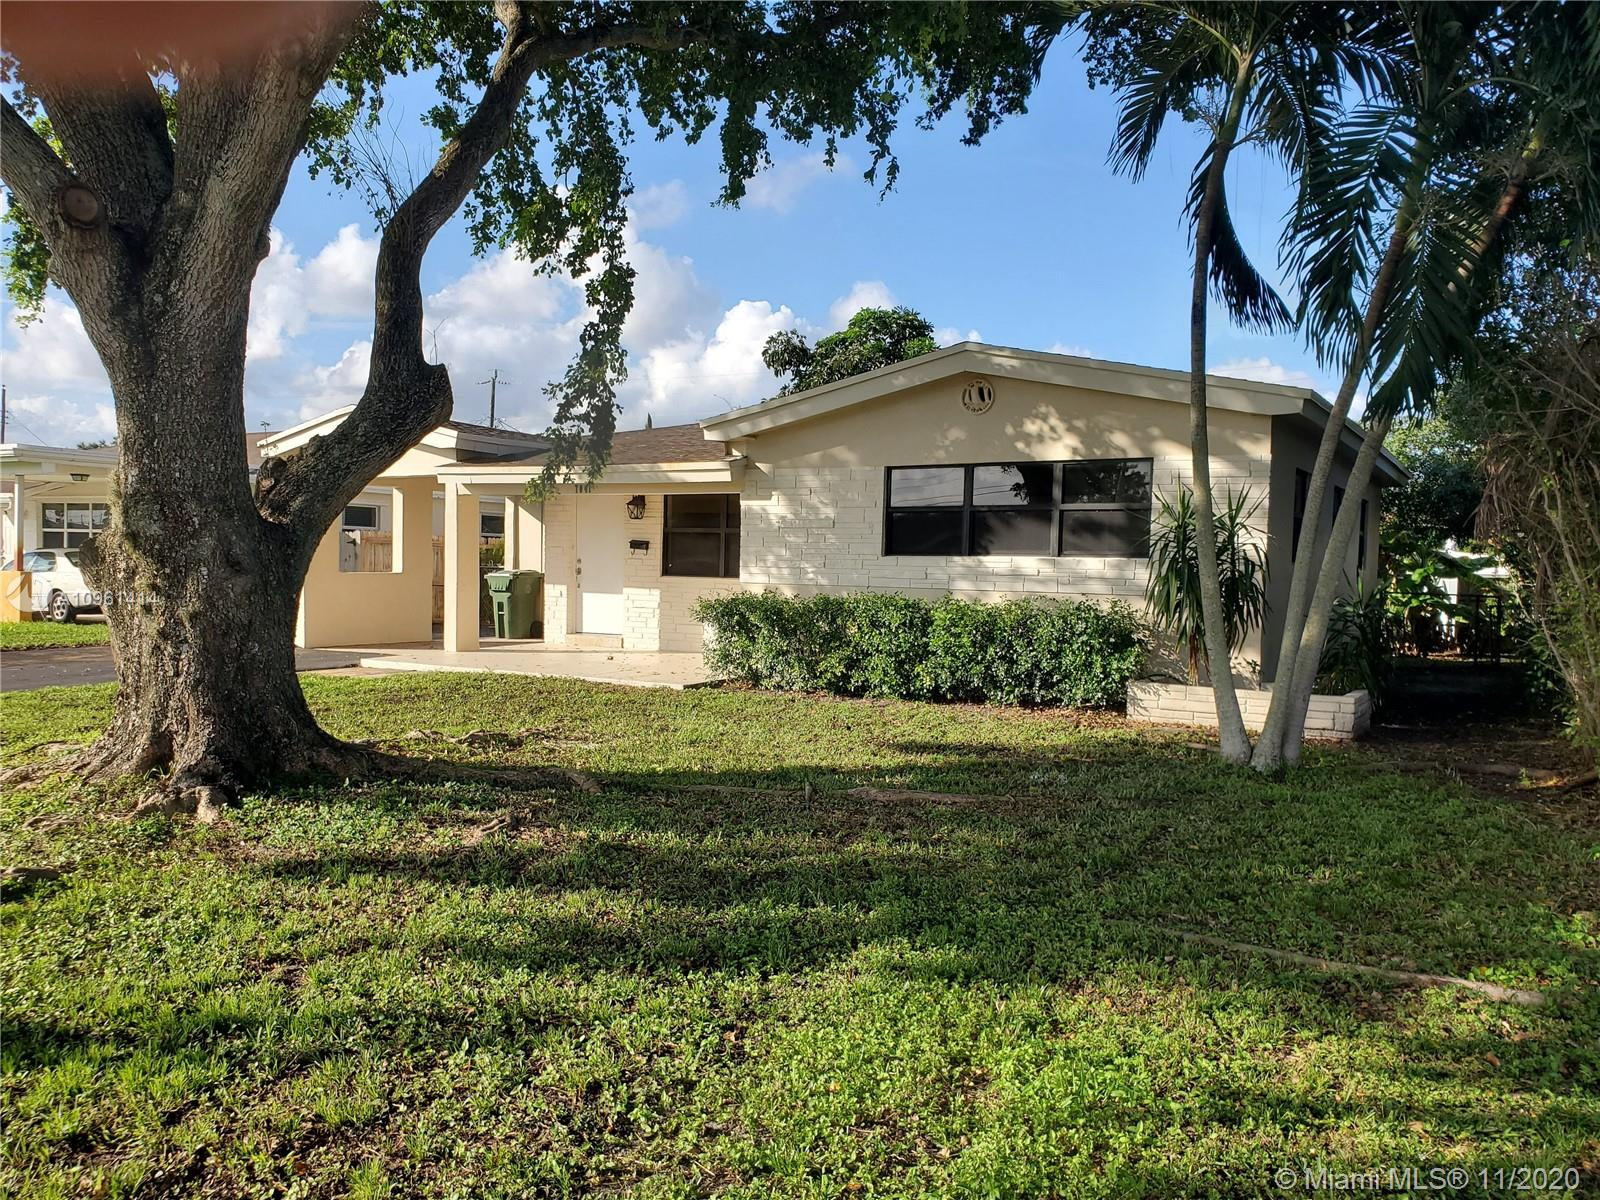 VERY NICE 2 BEDROOM 2 BATH STARTER HOME WITH CARPORT IN EAST PEMBROKE PINES! LOCATED ON A QUIET STREET WITH BRAND NEW ROOF, THIS HOUSE IS READY TO MOVE IN. LIVING ROOM AND FAMILY ROOM WITH SEPERATE DINING ROOM AND UTILITY FOR WASHER AND DRYER PLUS ADDITIONAL STORAGE. RELAX IN YOUR SCREENED PORCH WITH PLENTY OF ROOM FOR A POOL. PERFECTLY SITUATED CLOSE TO THE TURNPIKE AND I-95 FOR EASY COMMUTE NORTH OR SOUTH. CLOSE TO PARKS, SCHOOLS/COLLEGES, SHOPPING CENTERS AND ENTERTAINMENT (SEMINOLE HARD ROCK). NO HOA OR FLOOD INSURANCE REQUIRED...